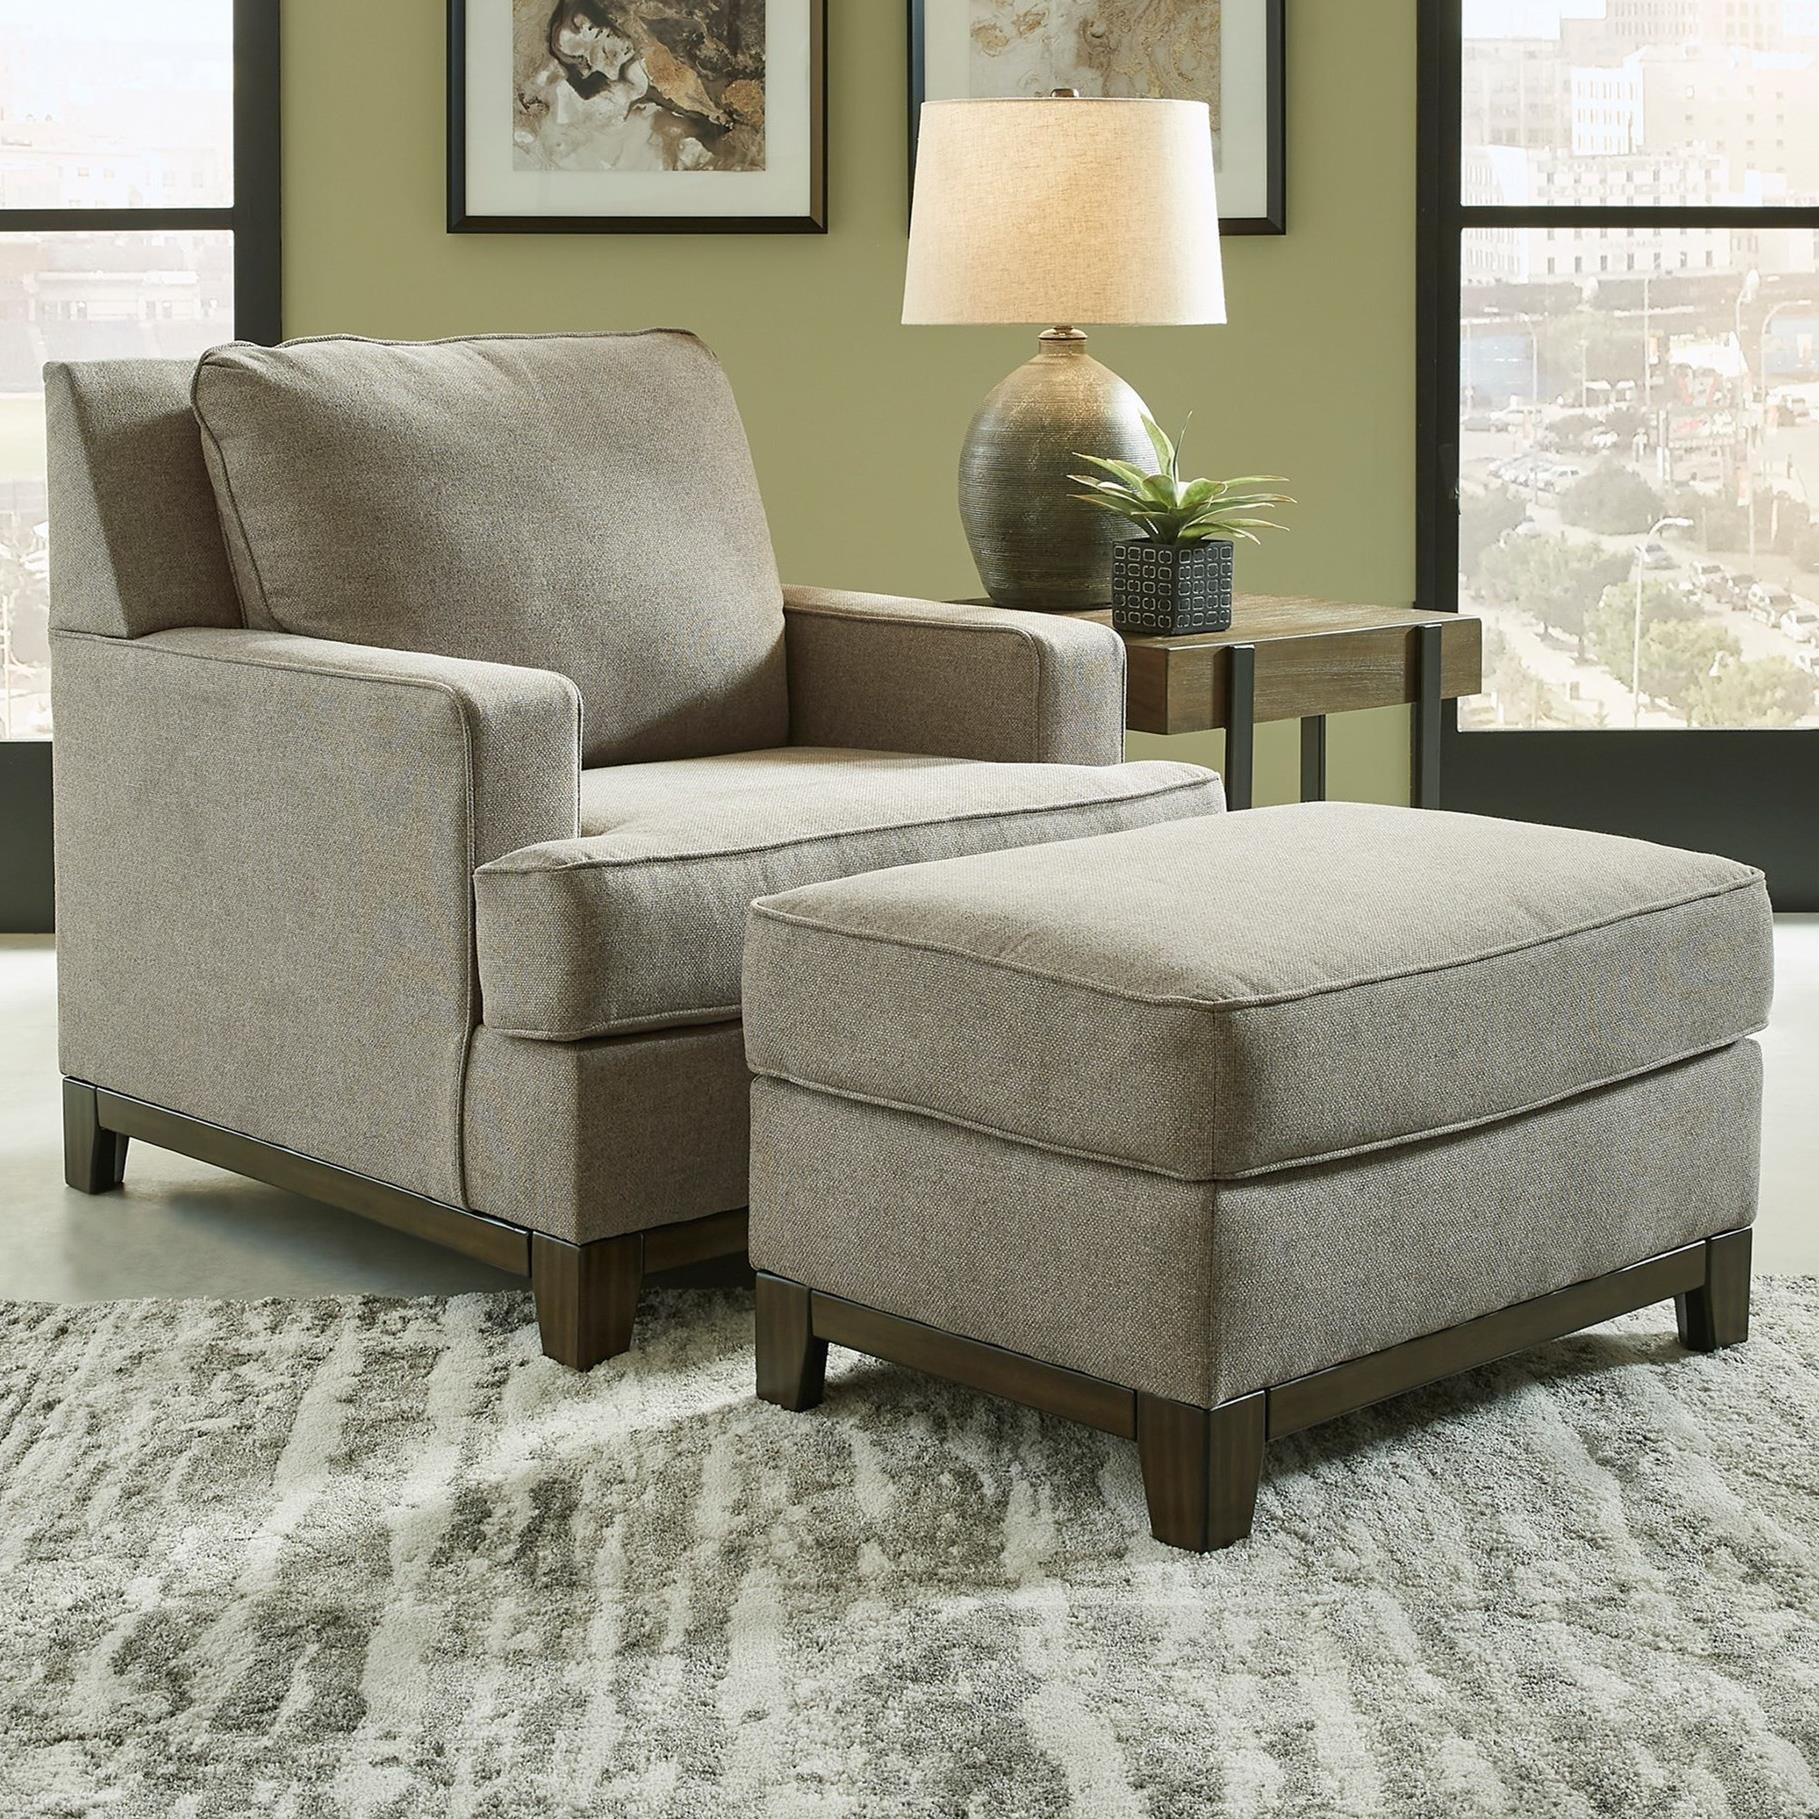 Kaywood Chair and Ottoman by Signature Design by Ashley at Northeast Factory Direct